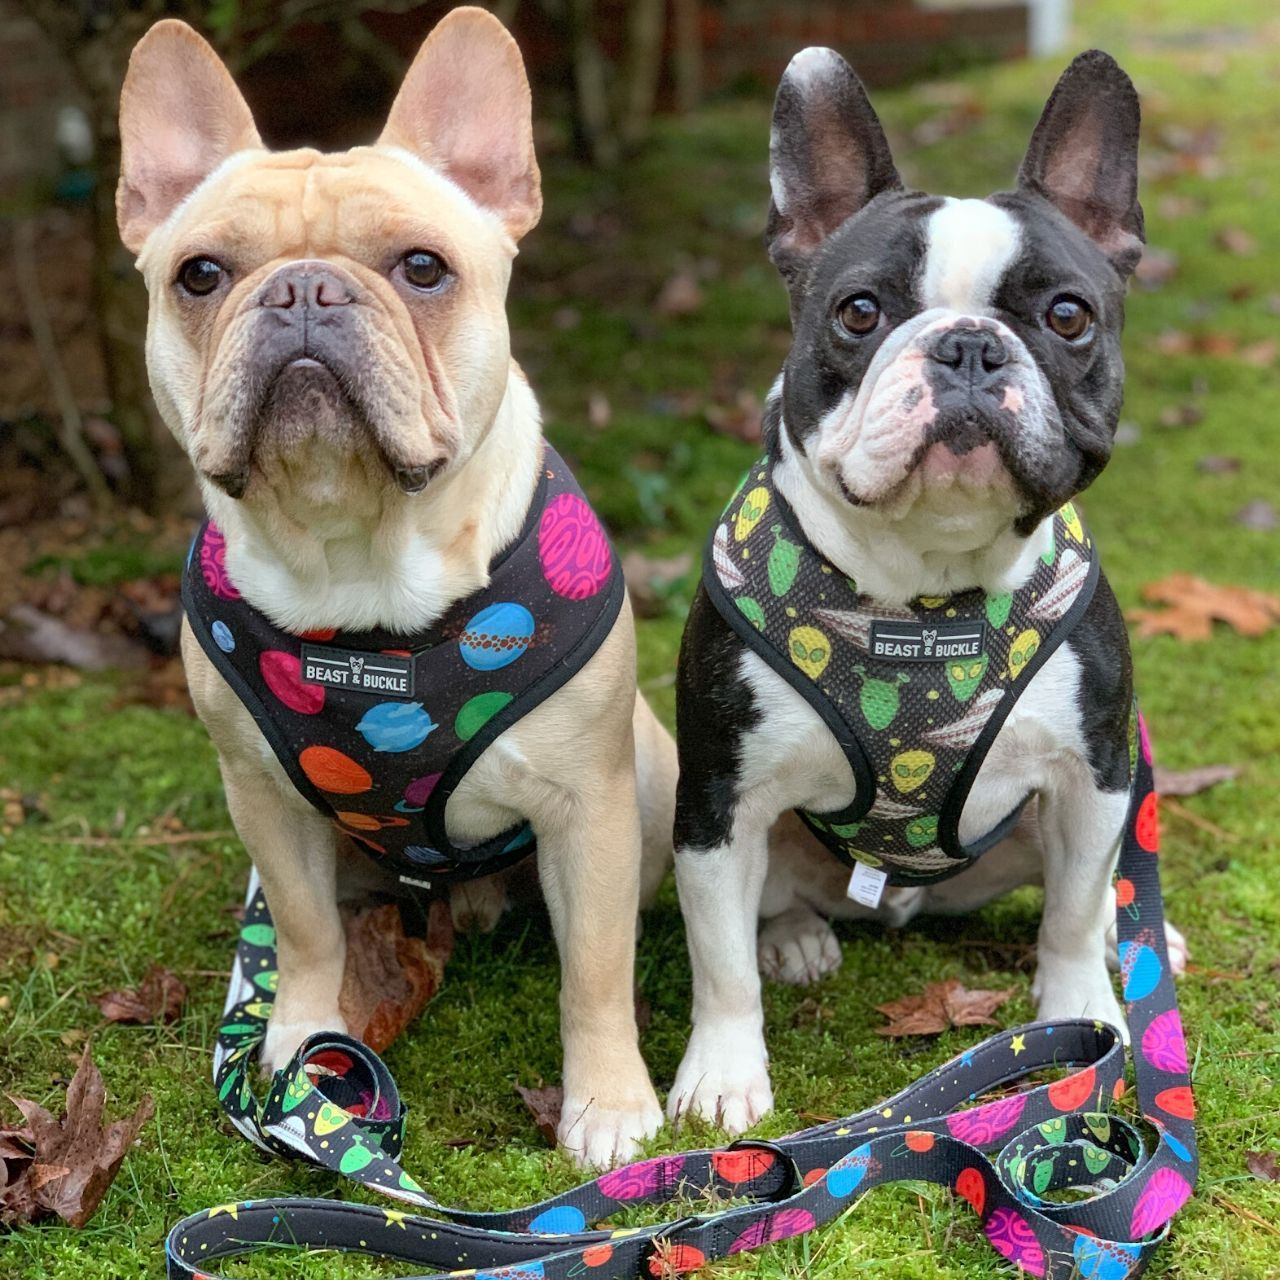 Outer Space Harness & Leash Set - Beast & Buckle